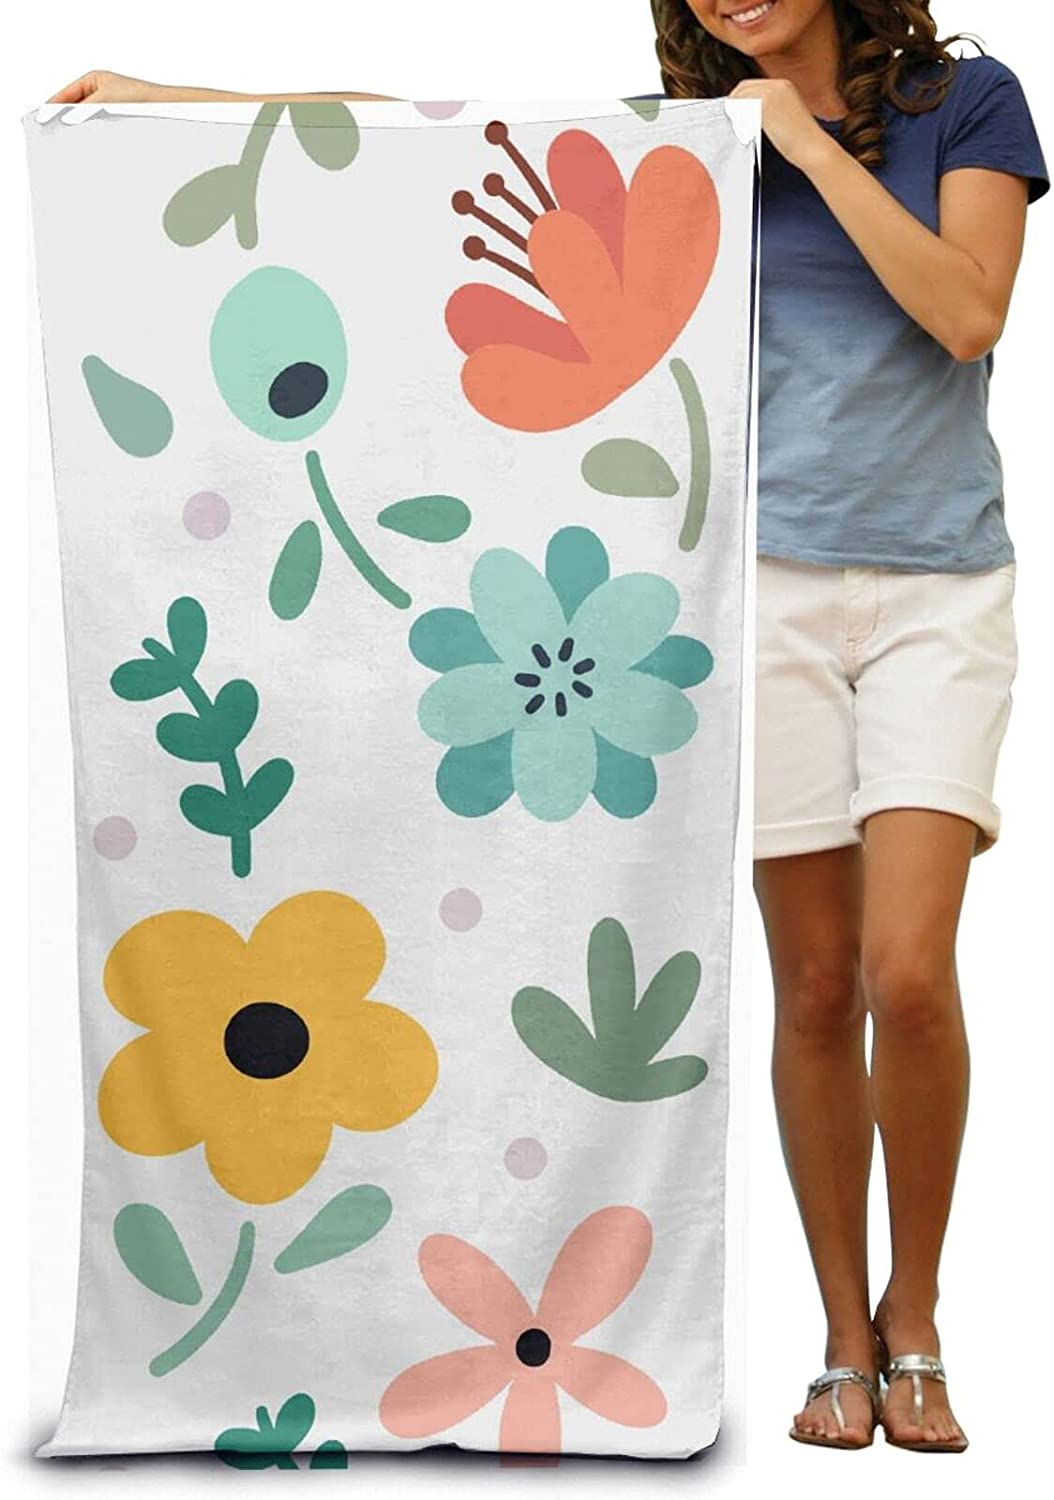 Beauty products DAZHILAO Super Soft Luxury Bath Absorbent High material Flowers To Towel